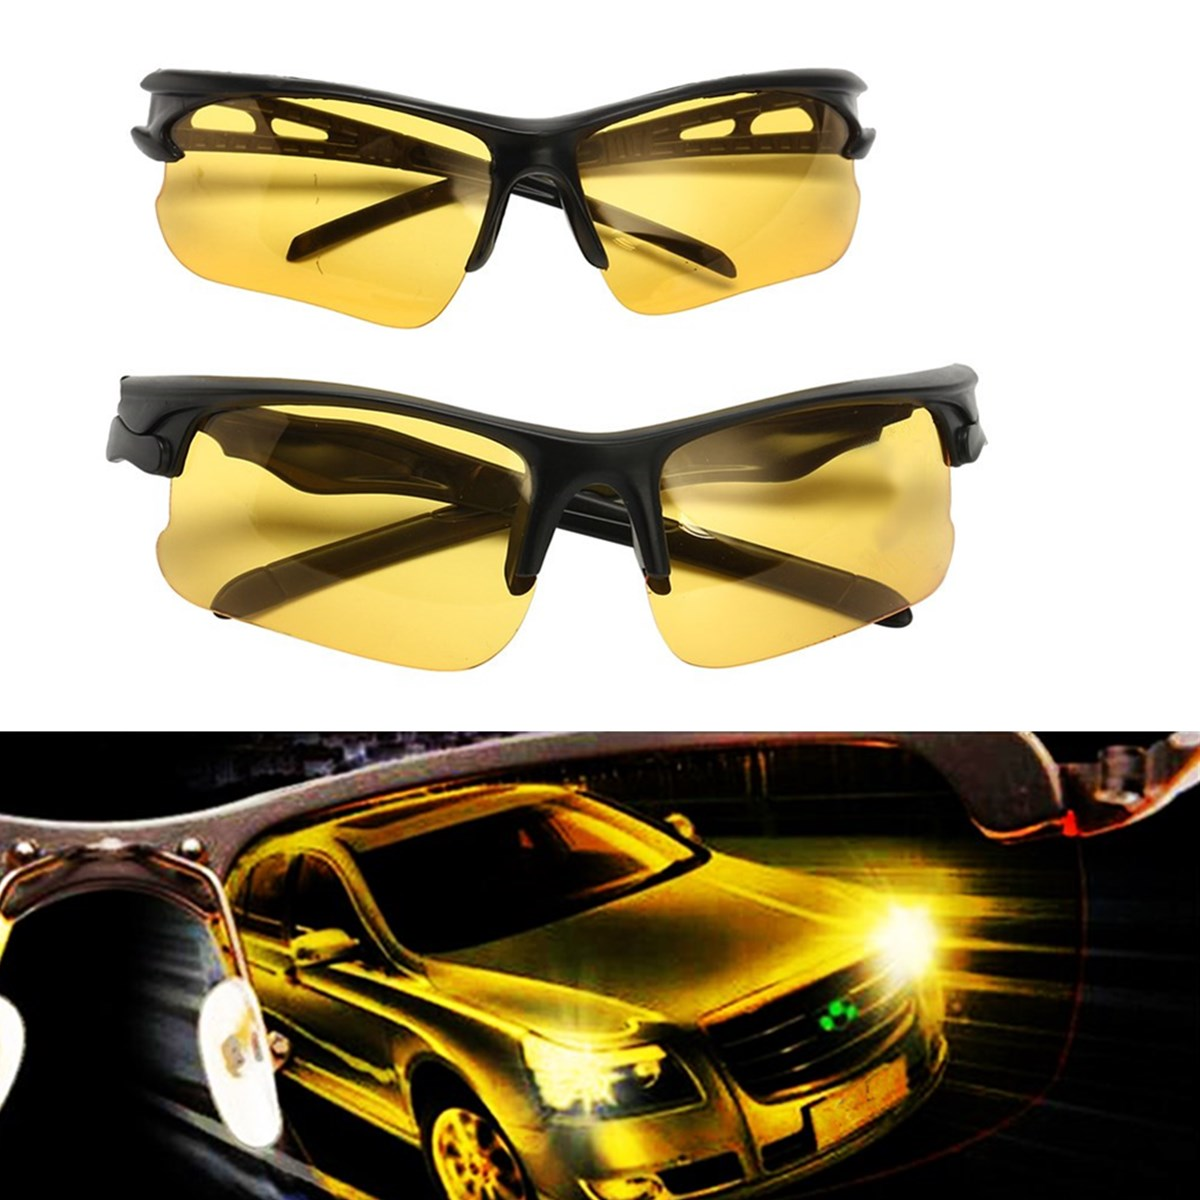 Night Sight Driving HD Glasses Anti-Glare Yellow Sunglasses Eyewear Metal Night Vision Protection Polarized Glasses Car Driving